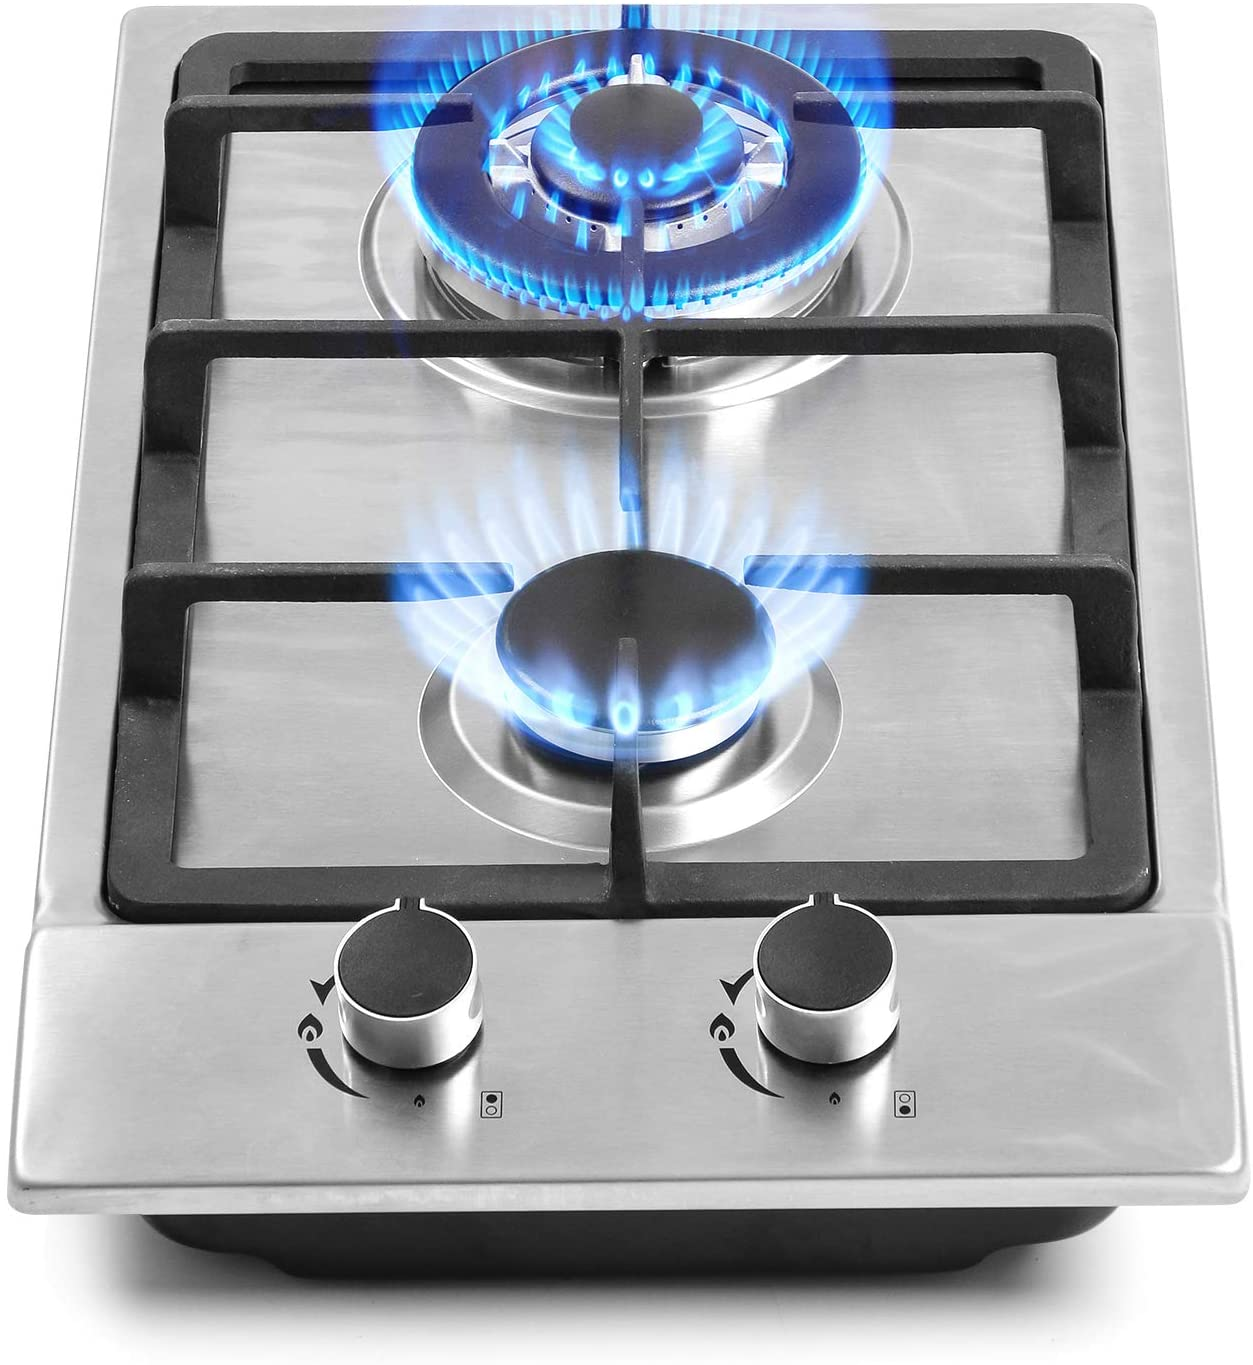 FORIMO 12-inch 2 Burner Gas Cooktop